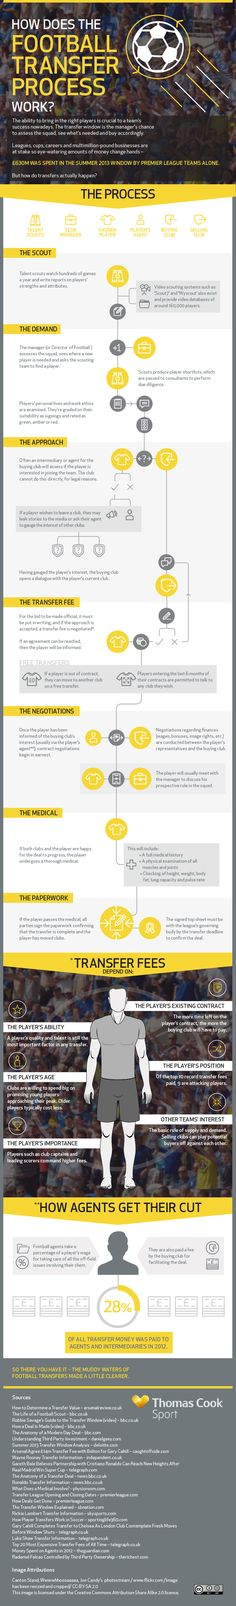 How Does The Football Transfer Process Work? - Do you fancy an infographic? There are a lot of them online, but if you want your own please visit http://www.linfografico.com/prezzi/ Online girano molte infografiche, se ne vuoi realizzare una tutta tua visita http://www.linfografico.com/prezzi/